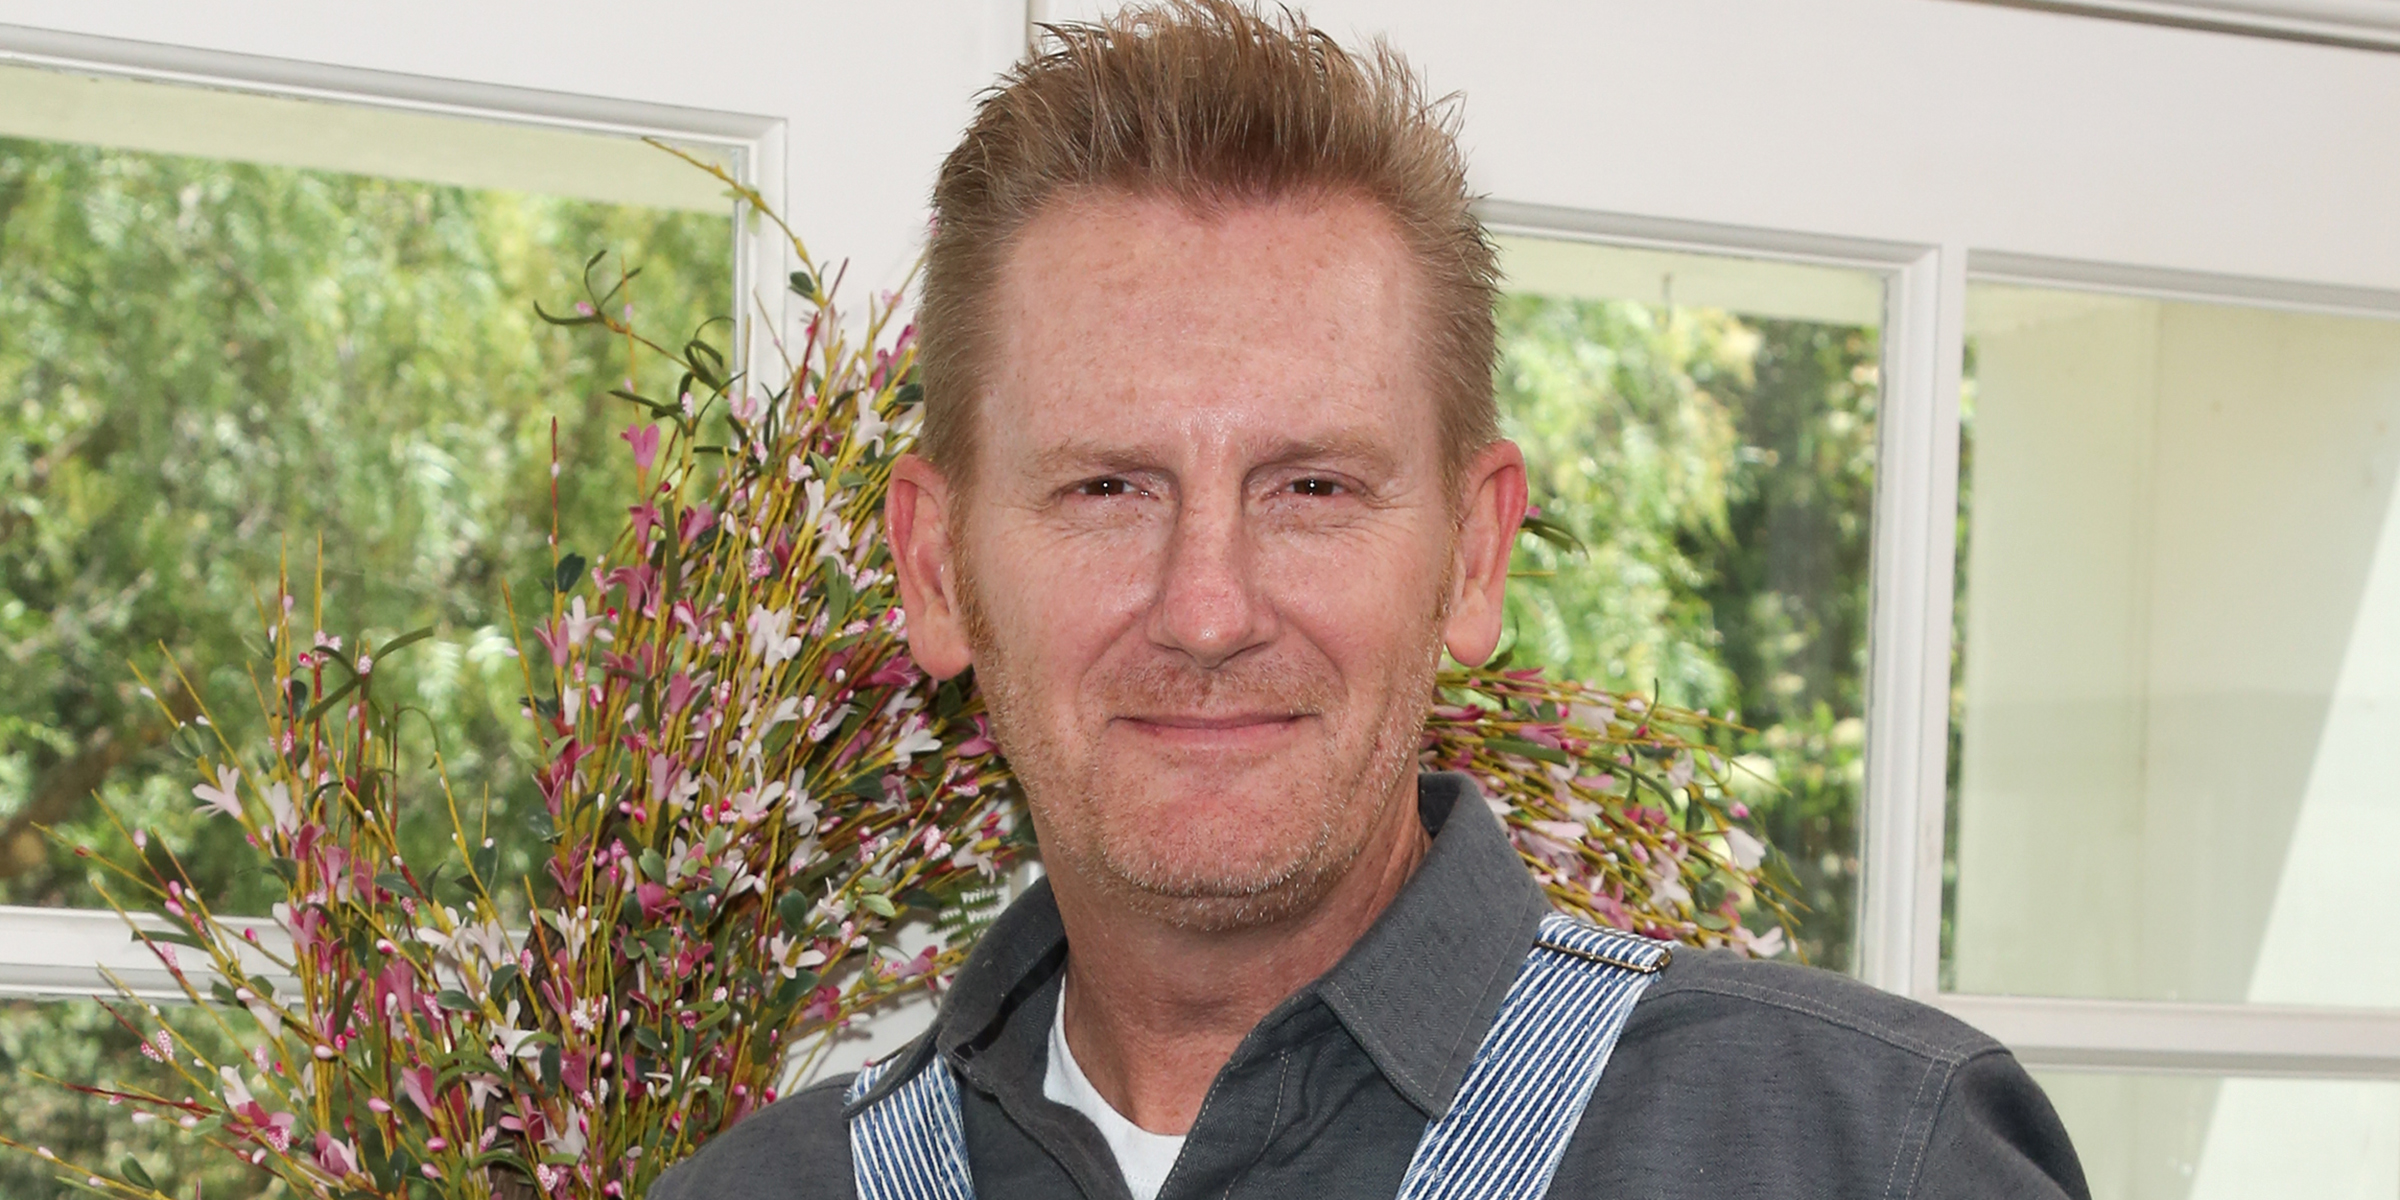 Rory Feek's faith guided his love for gay daughter